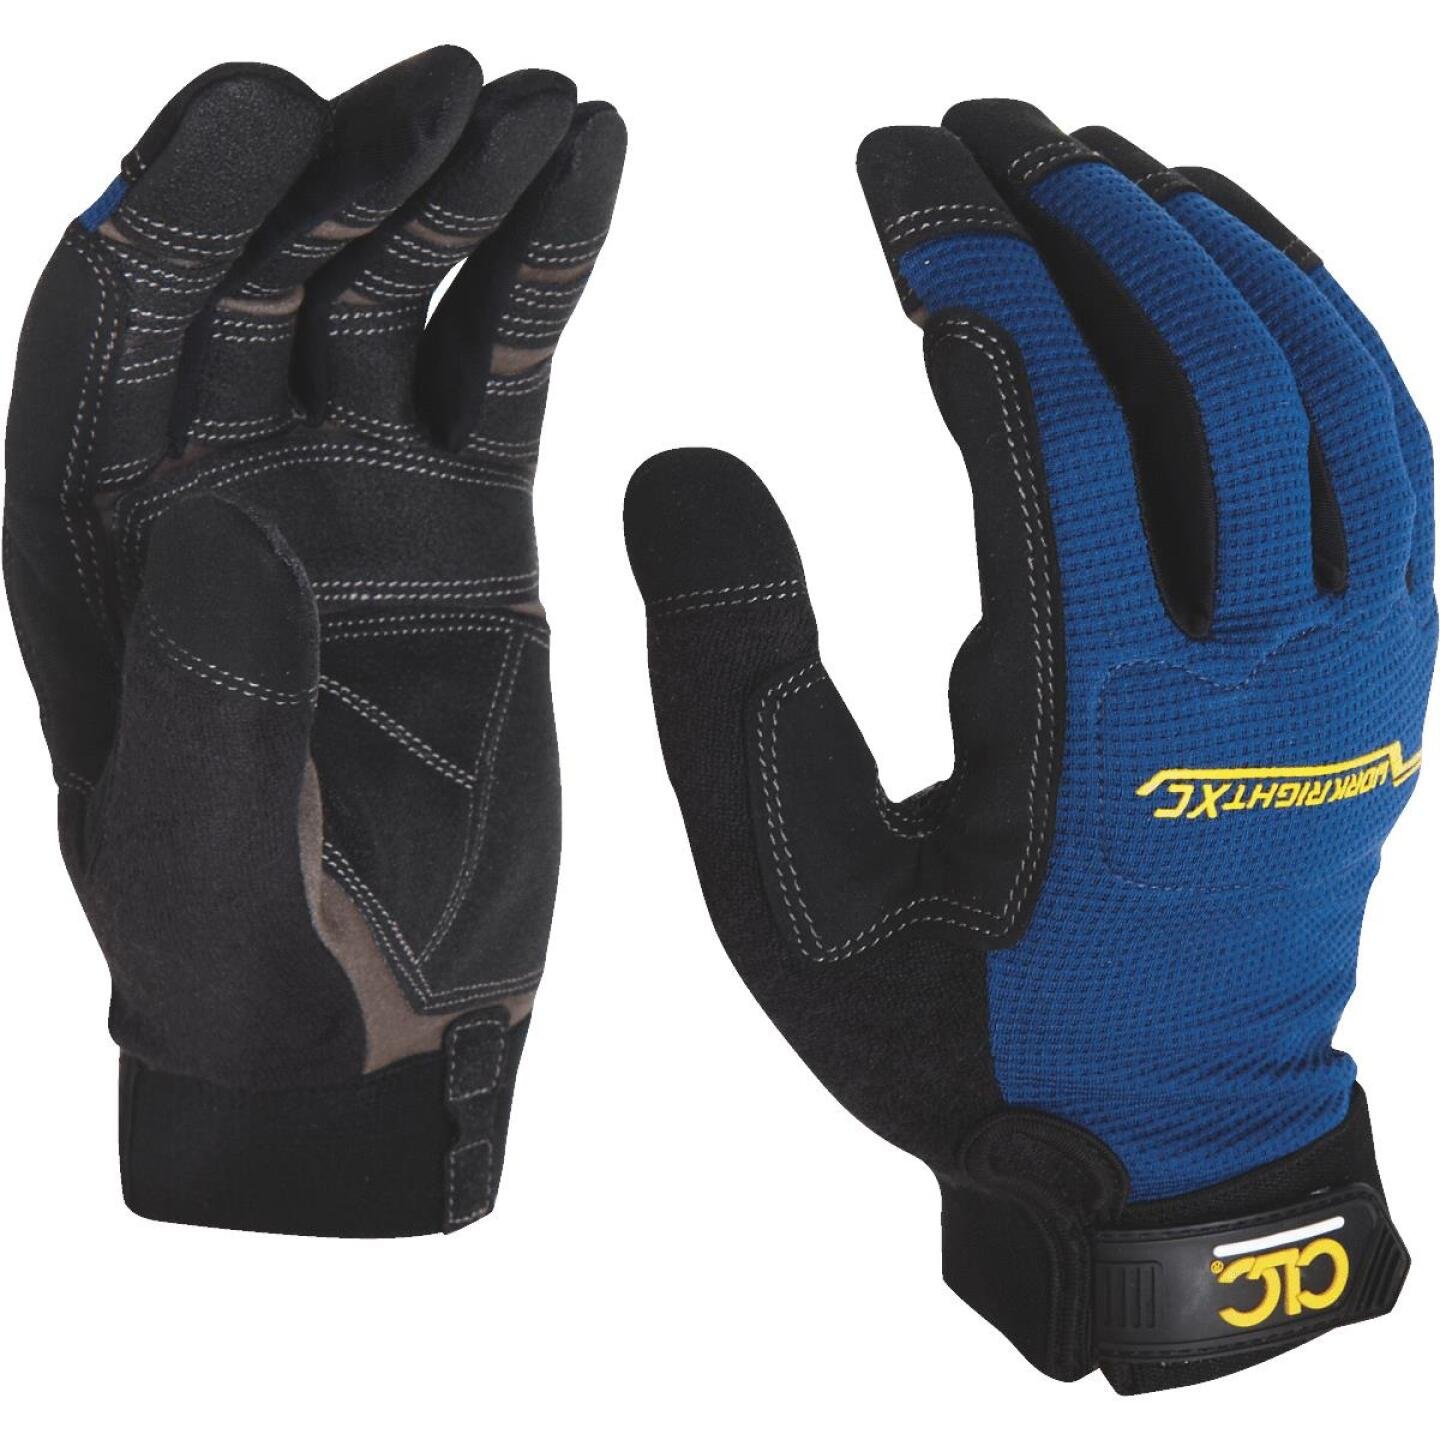 CLC Workright XC Men's Large Synthetic Leather Flex Grip High Performance Glove Image 3